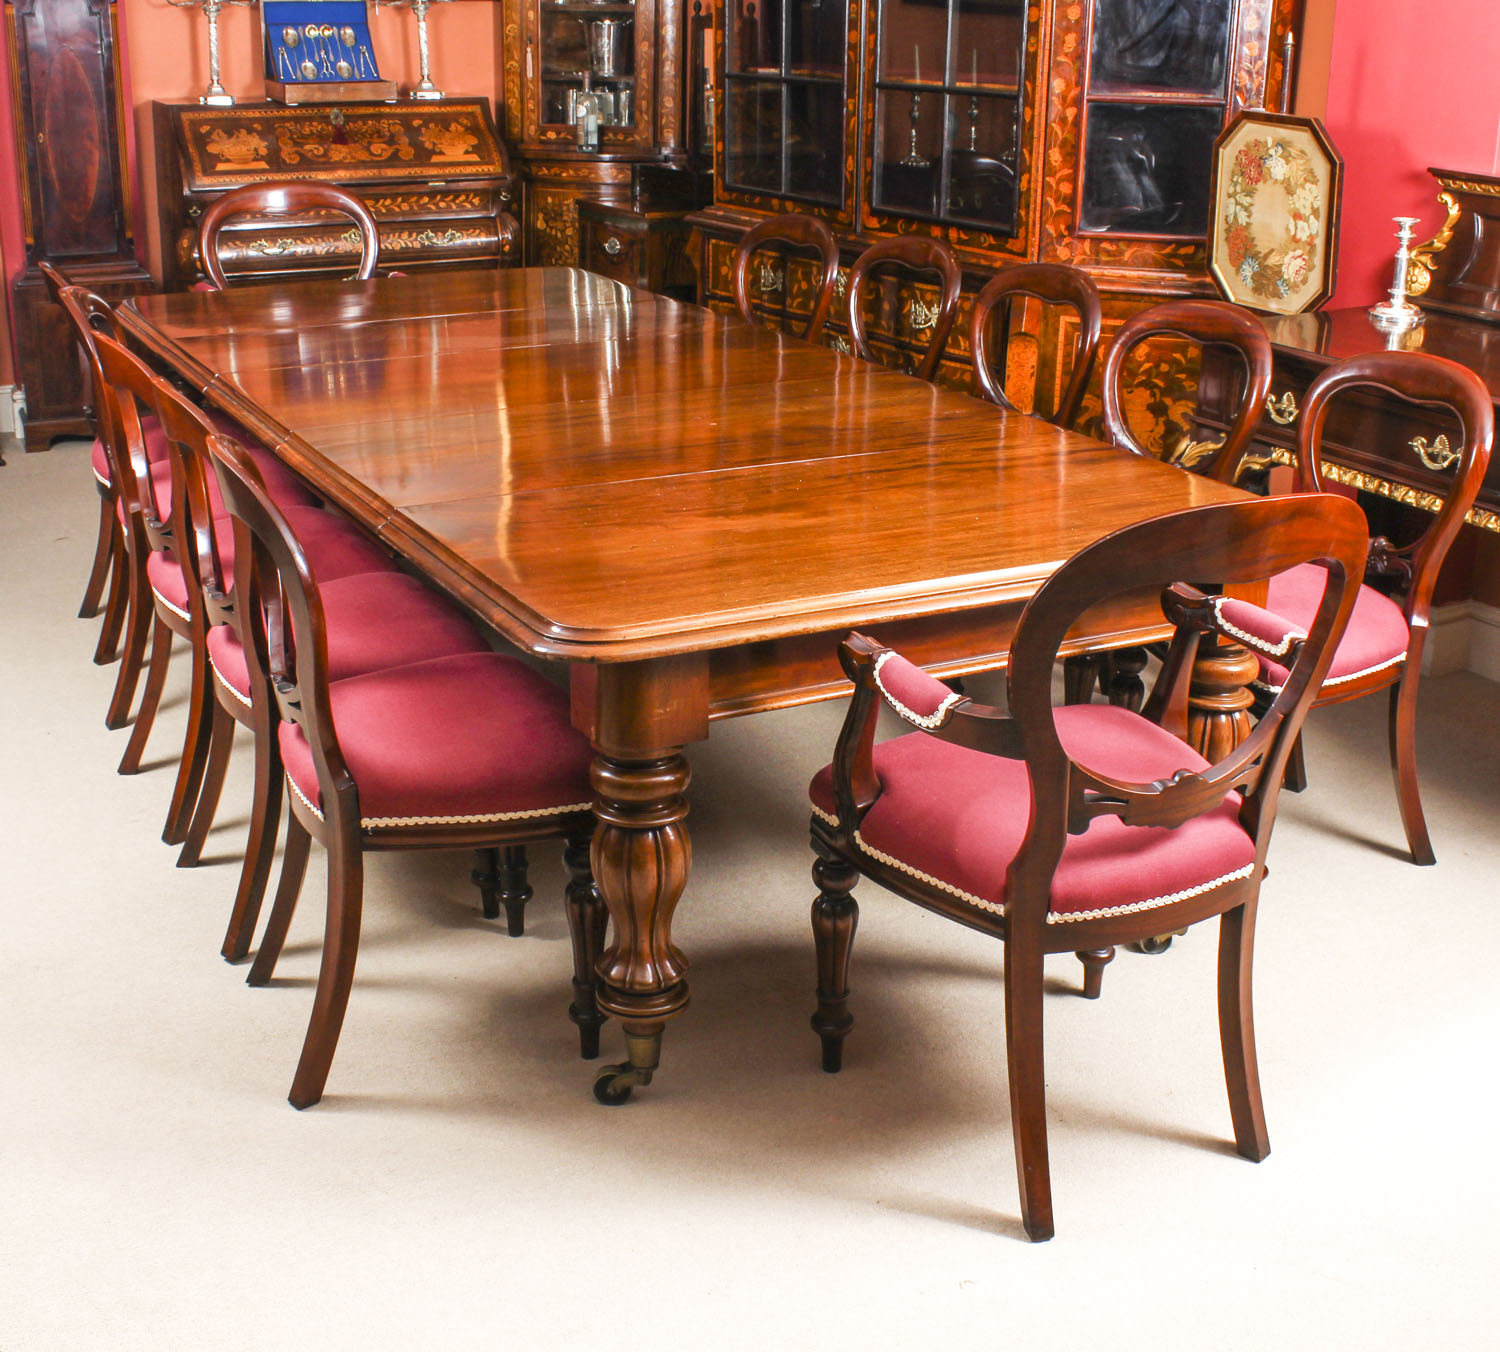 10 Foot Dining Table Antique 10 Ft Flame Mahogany Dining Table C1840 And 12